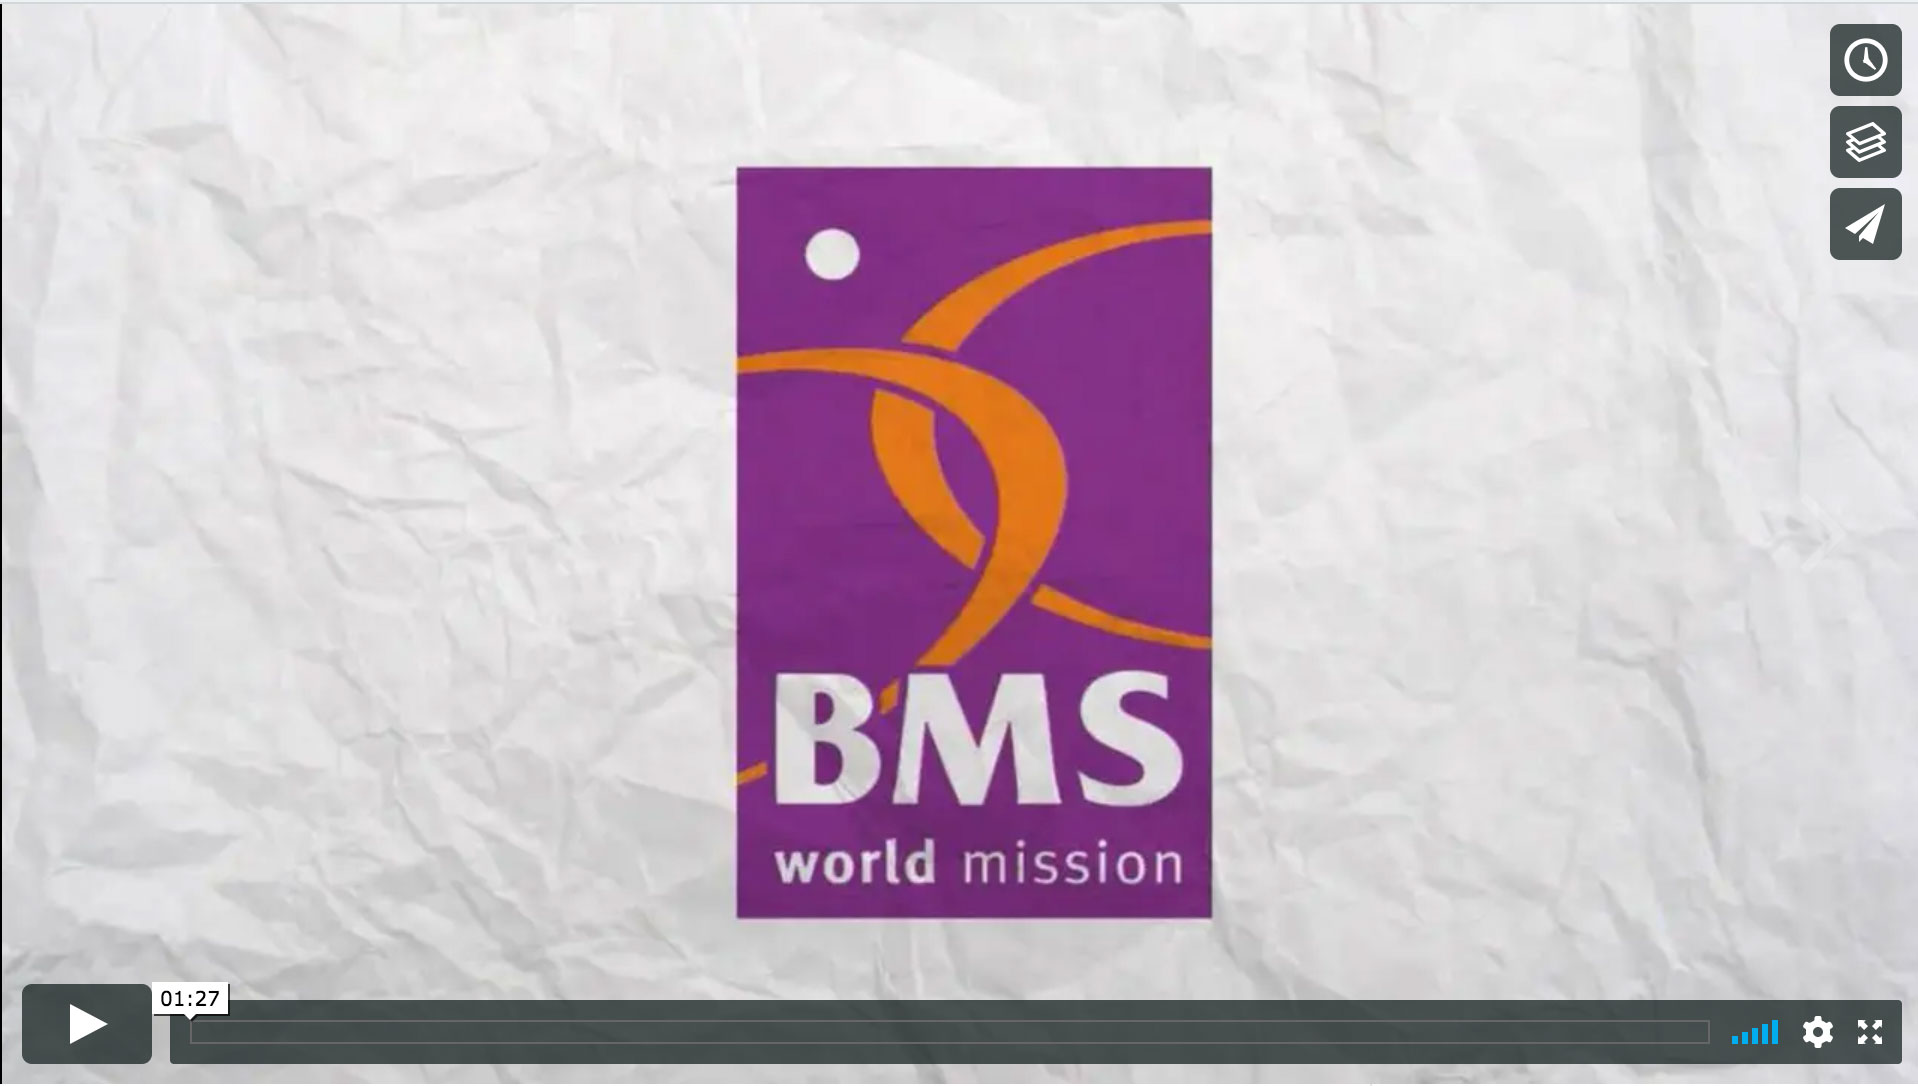 Screenshot of Why BMS video showing BMS logo